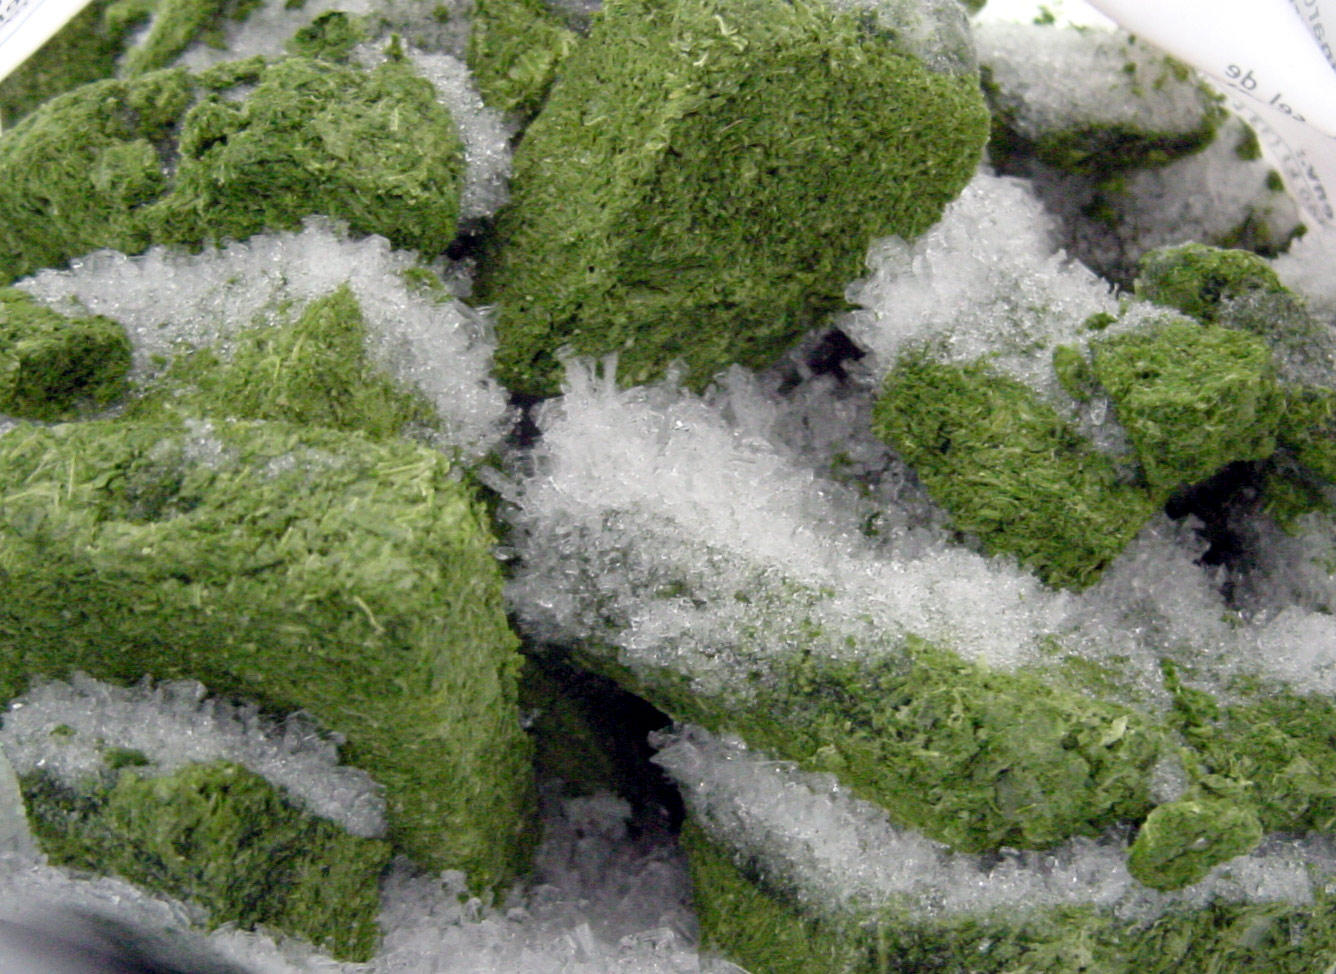 Should You Freeze Your Weed? #4C5E28